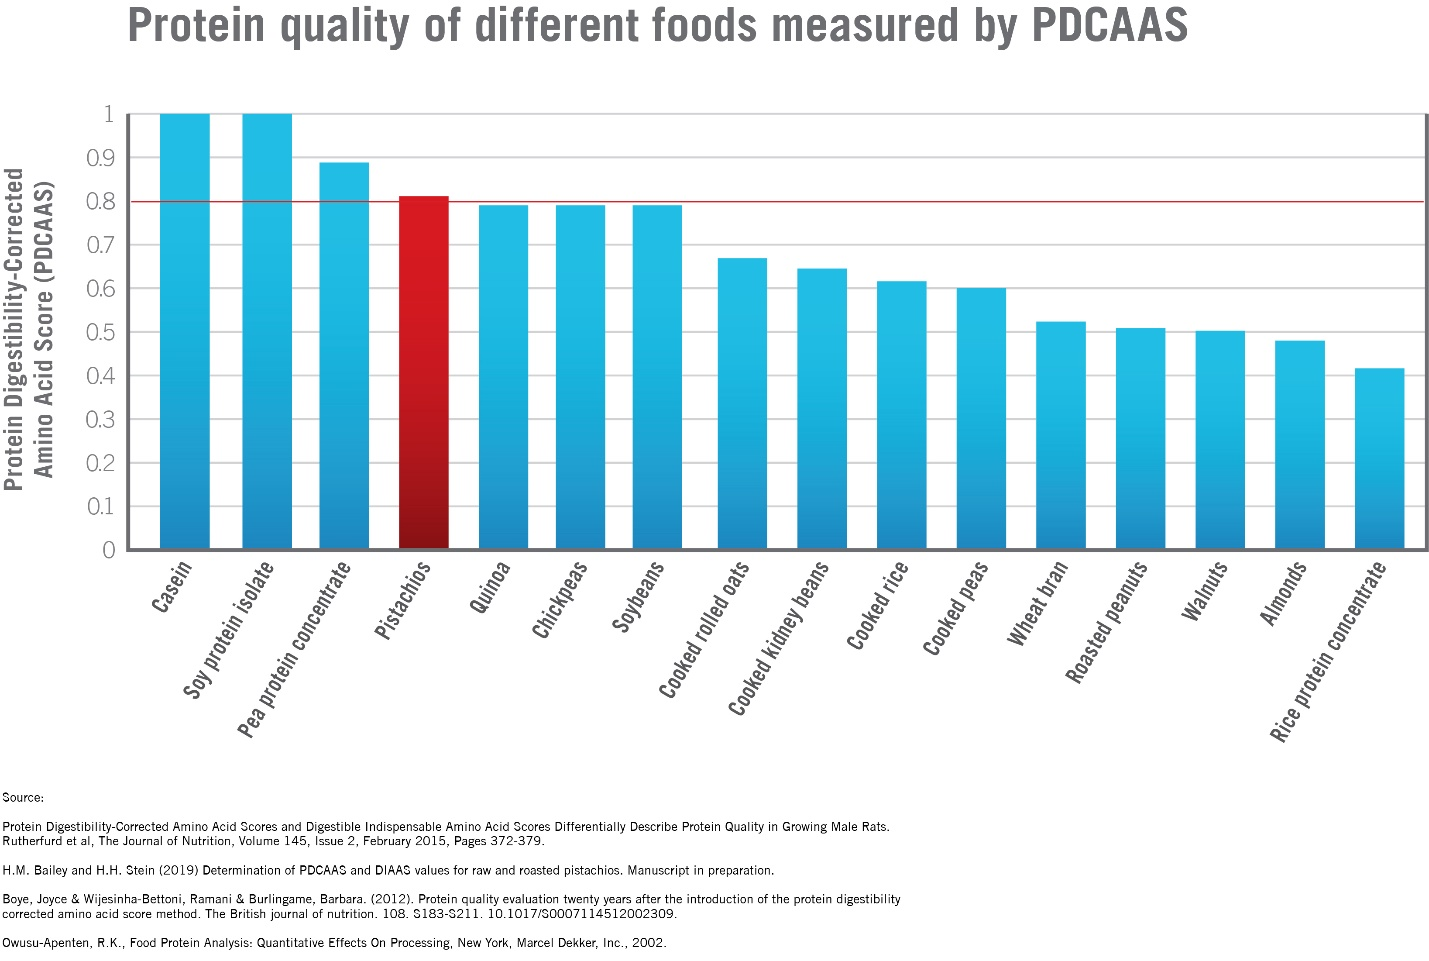 Protein quality of different foods measured by PDCAAS